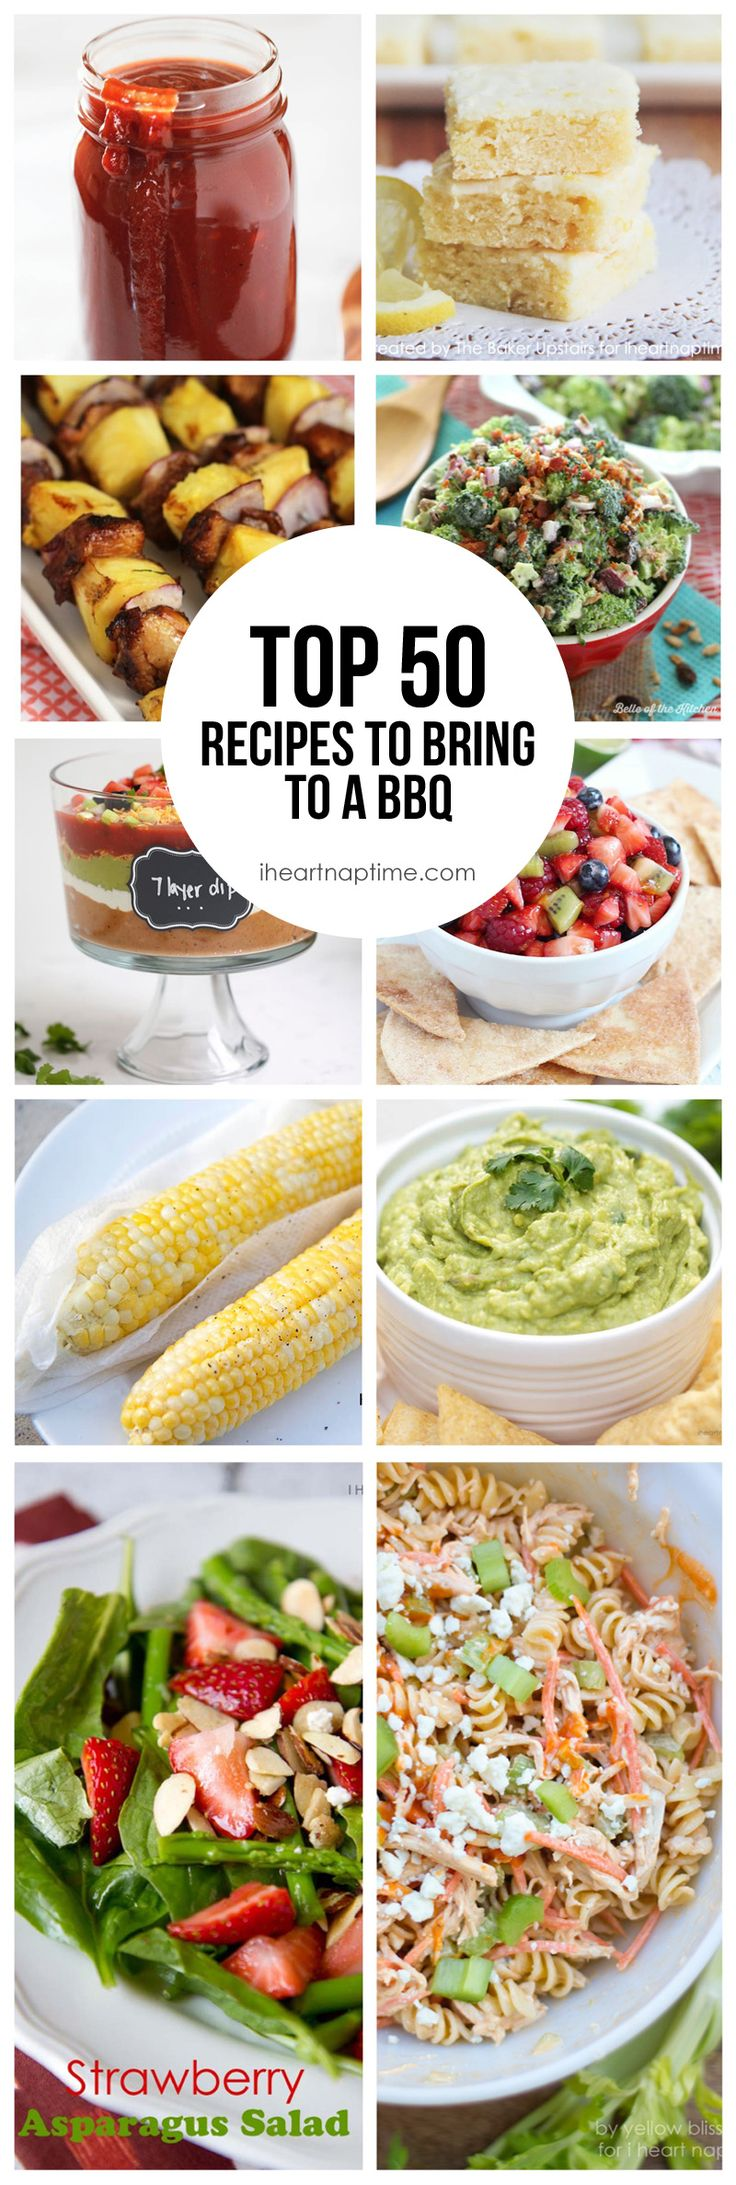 Top 50 recipe to bring to a BBQ -so many yummy recipes to try!